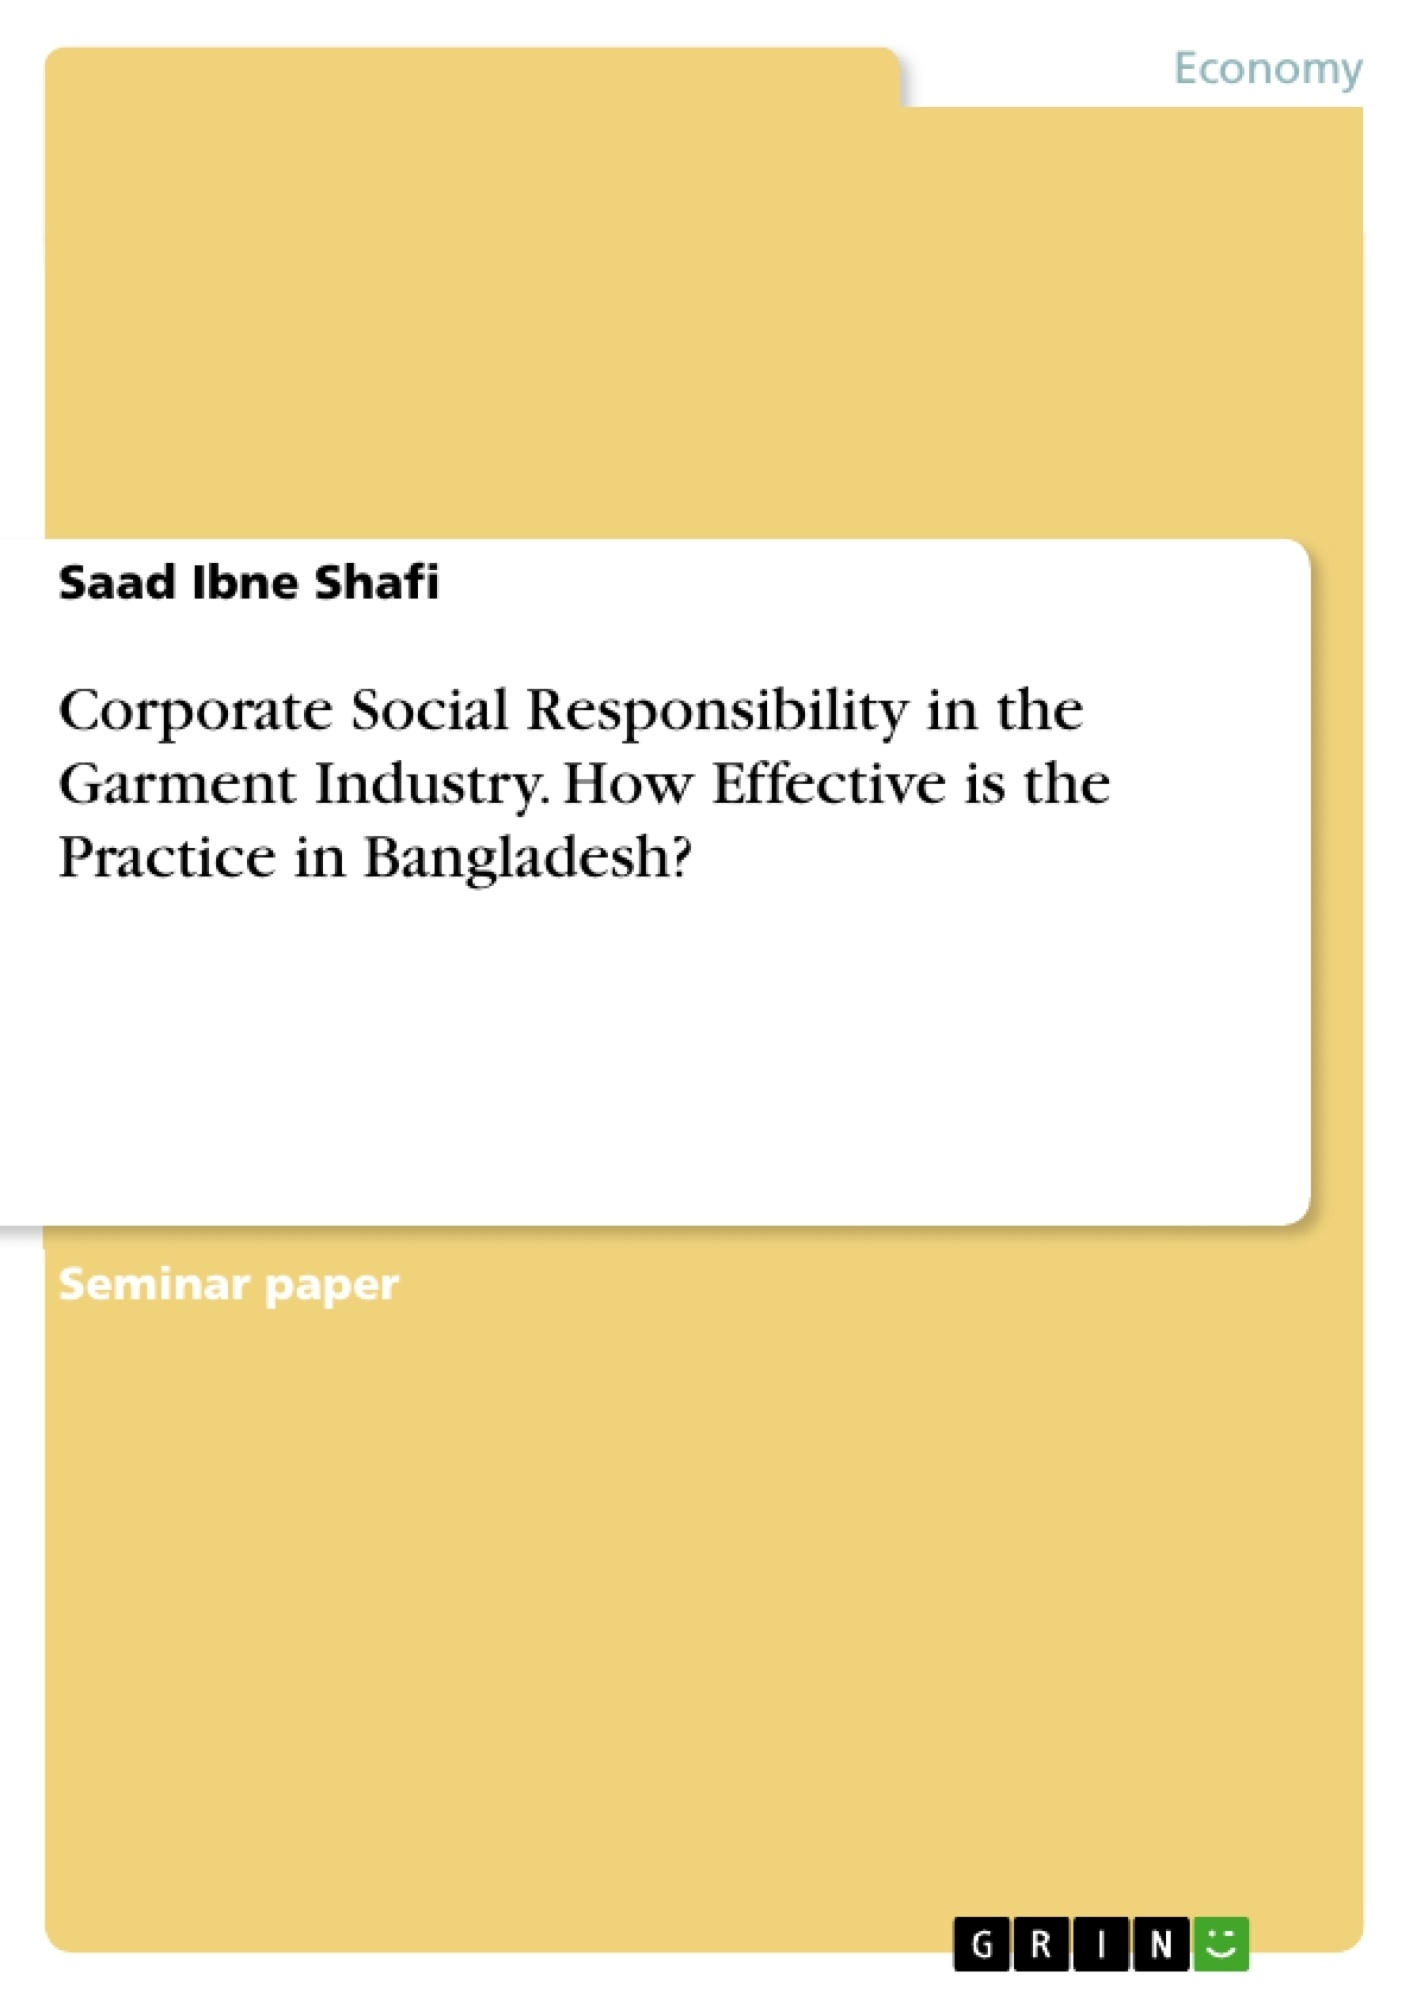 Title: Corporate Social Responsibility in the Garment Industry. How Effective is the Practice in Bangladesh?